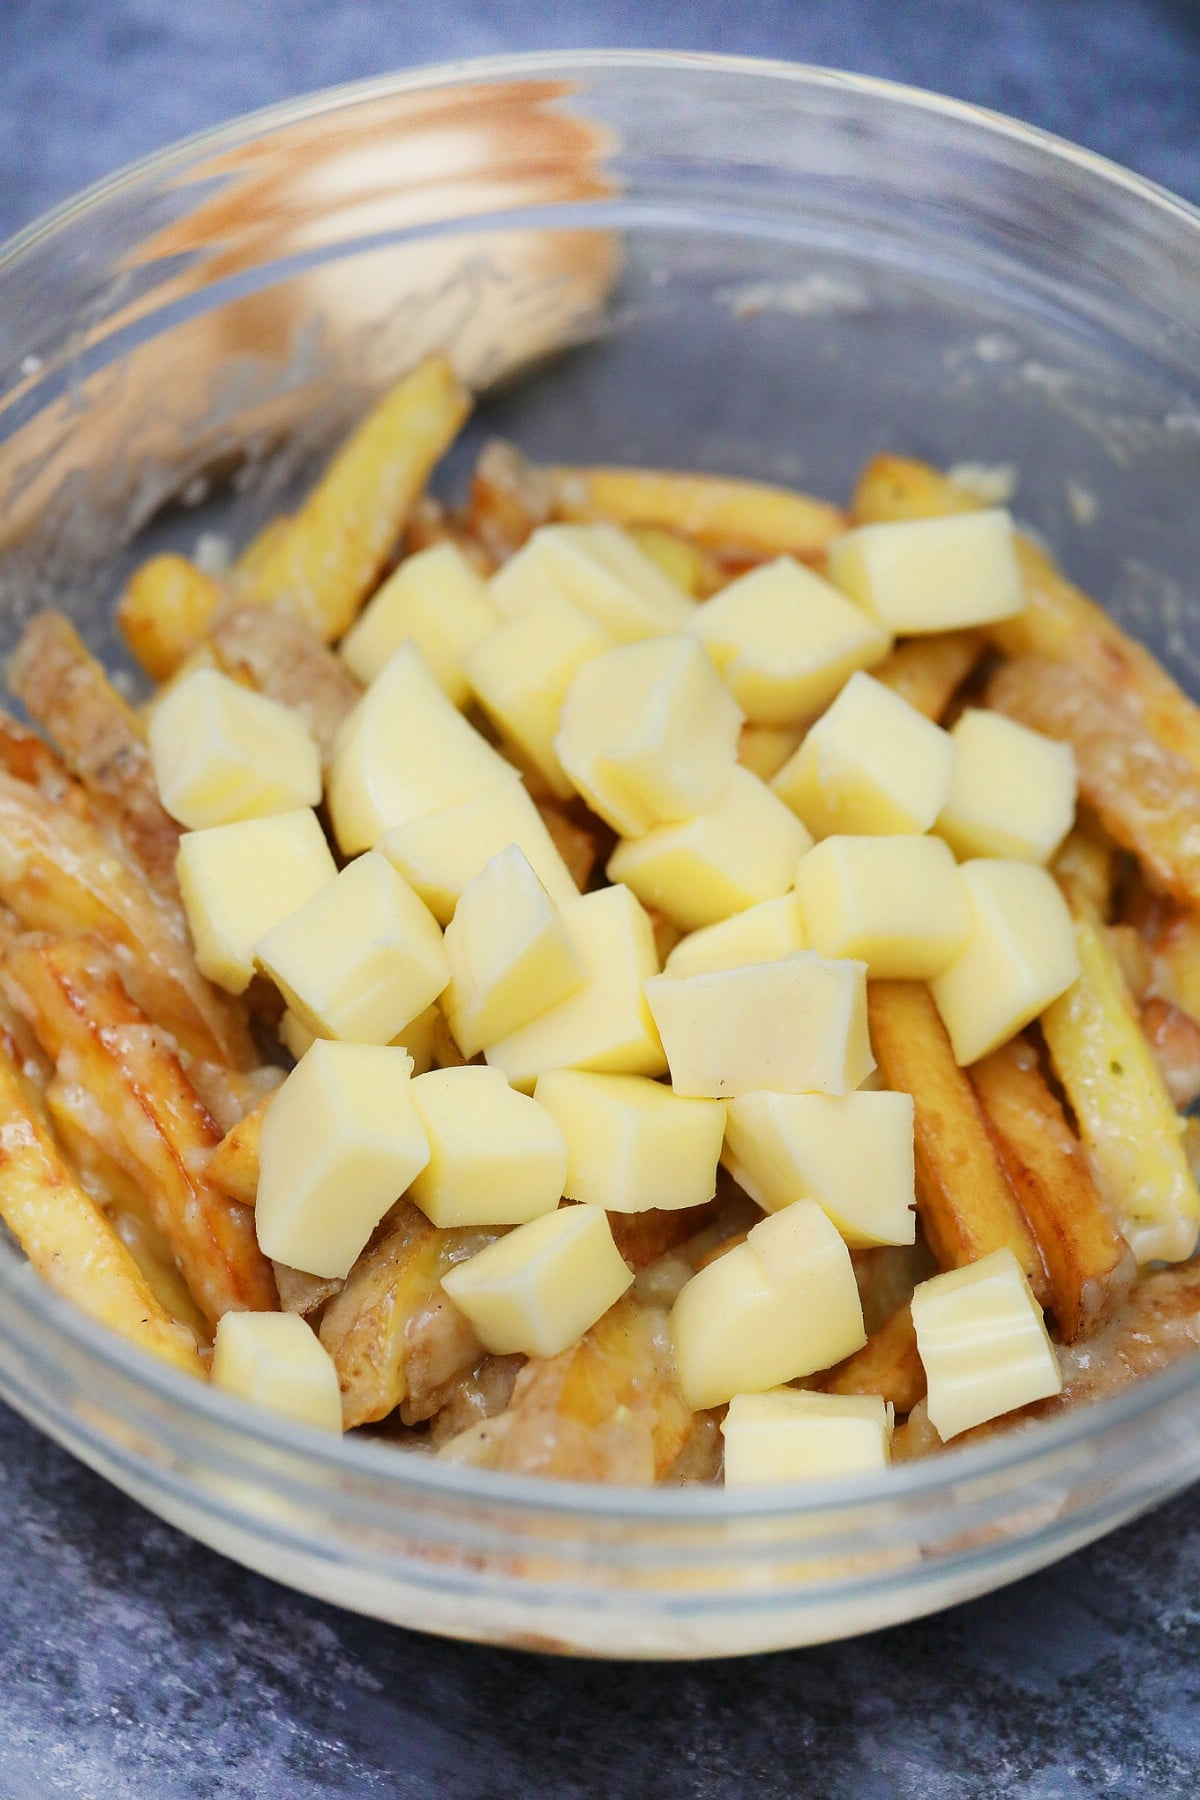 Fries gravy and cheese in large bowl